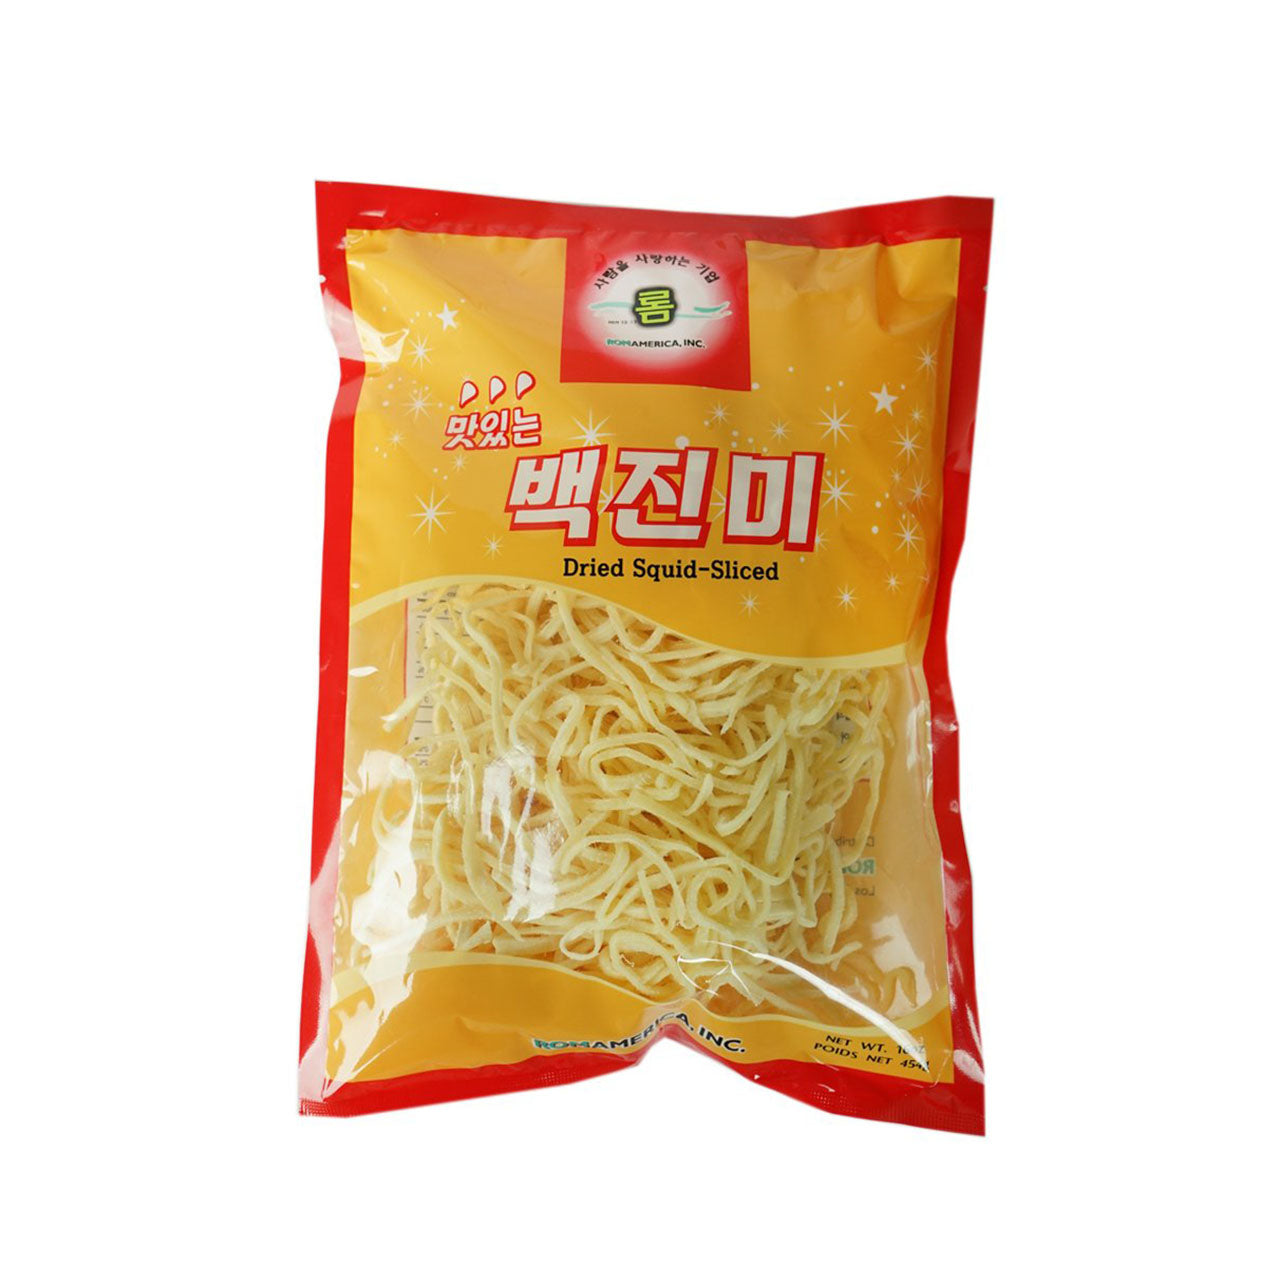 롬 백진미 (Rom Squid Dried Squid slice) - 16oz